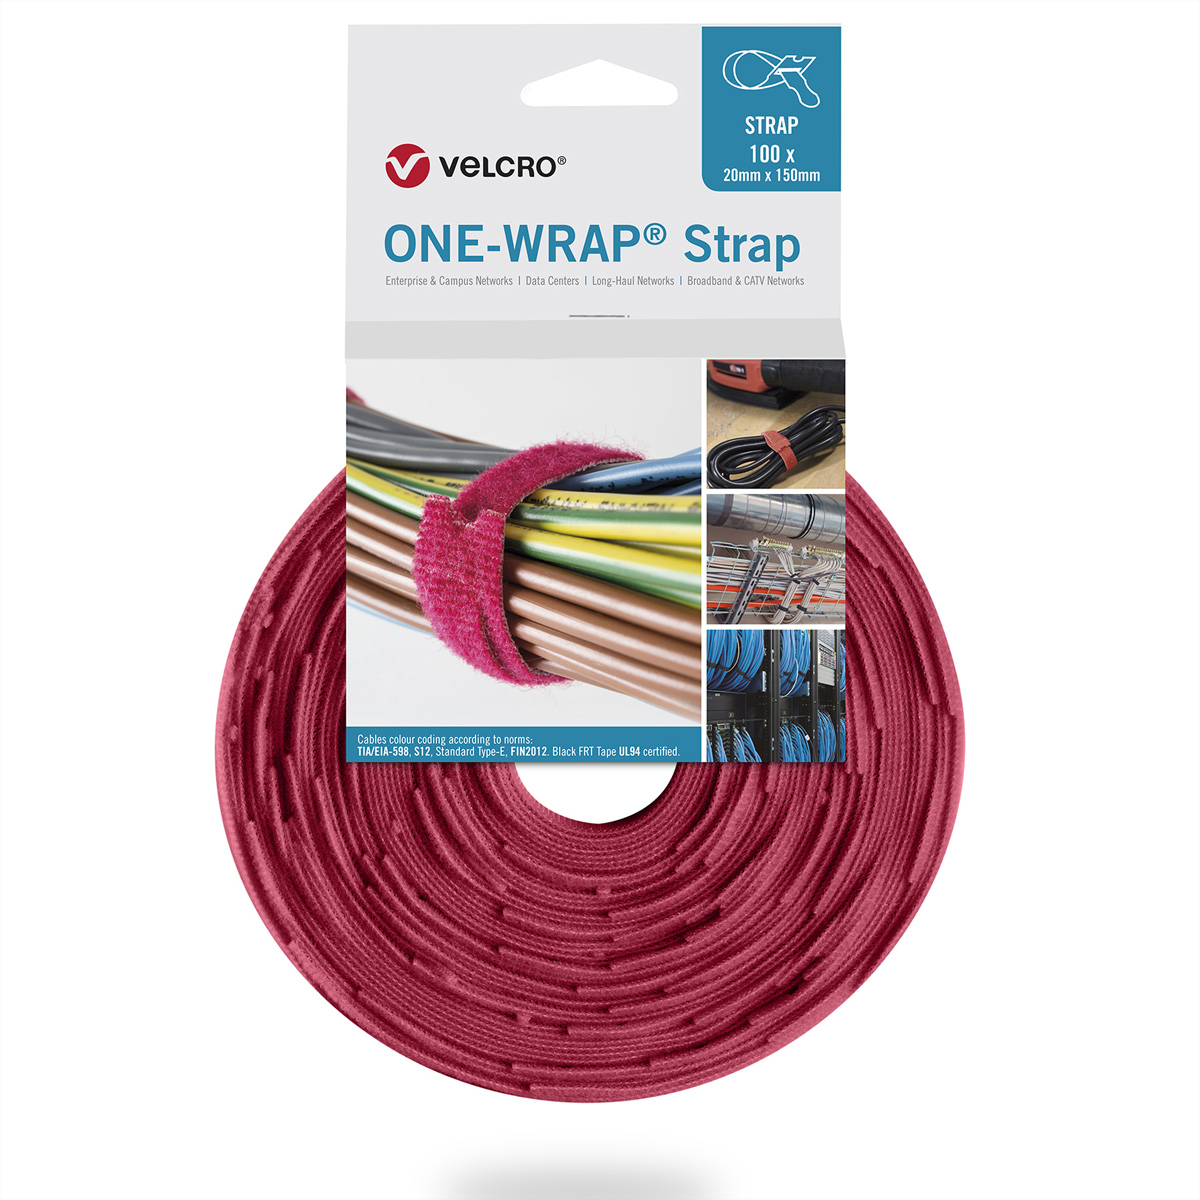 VELCRO® One Wrap® Strap 25mm x 300mm, 100 Stück, rot